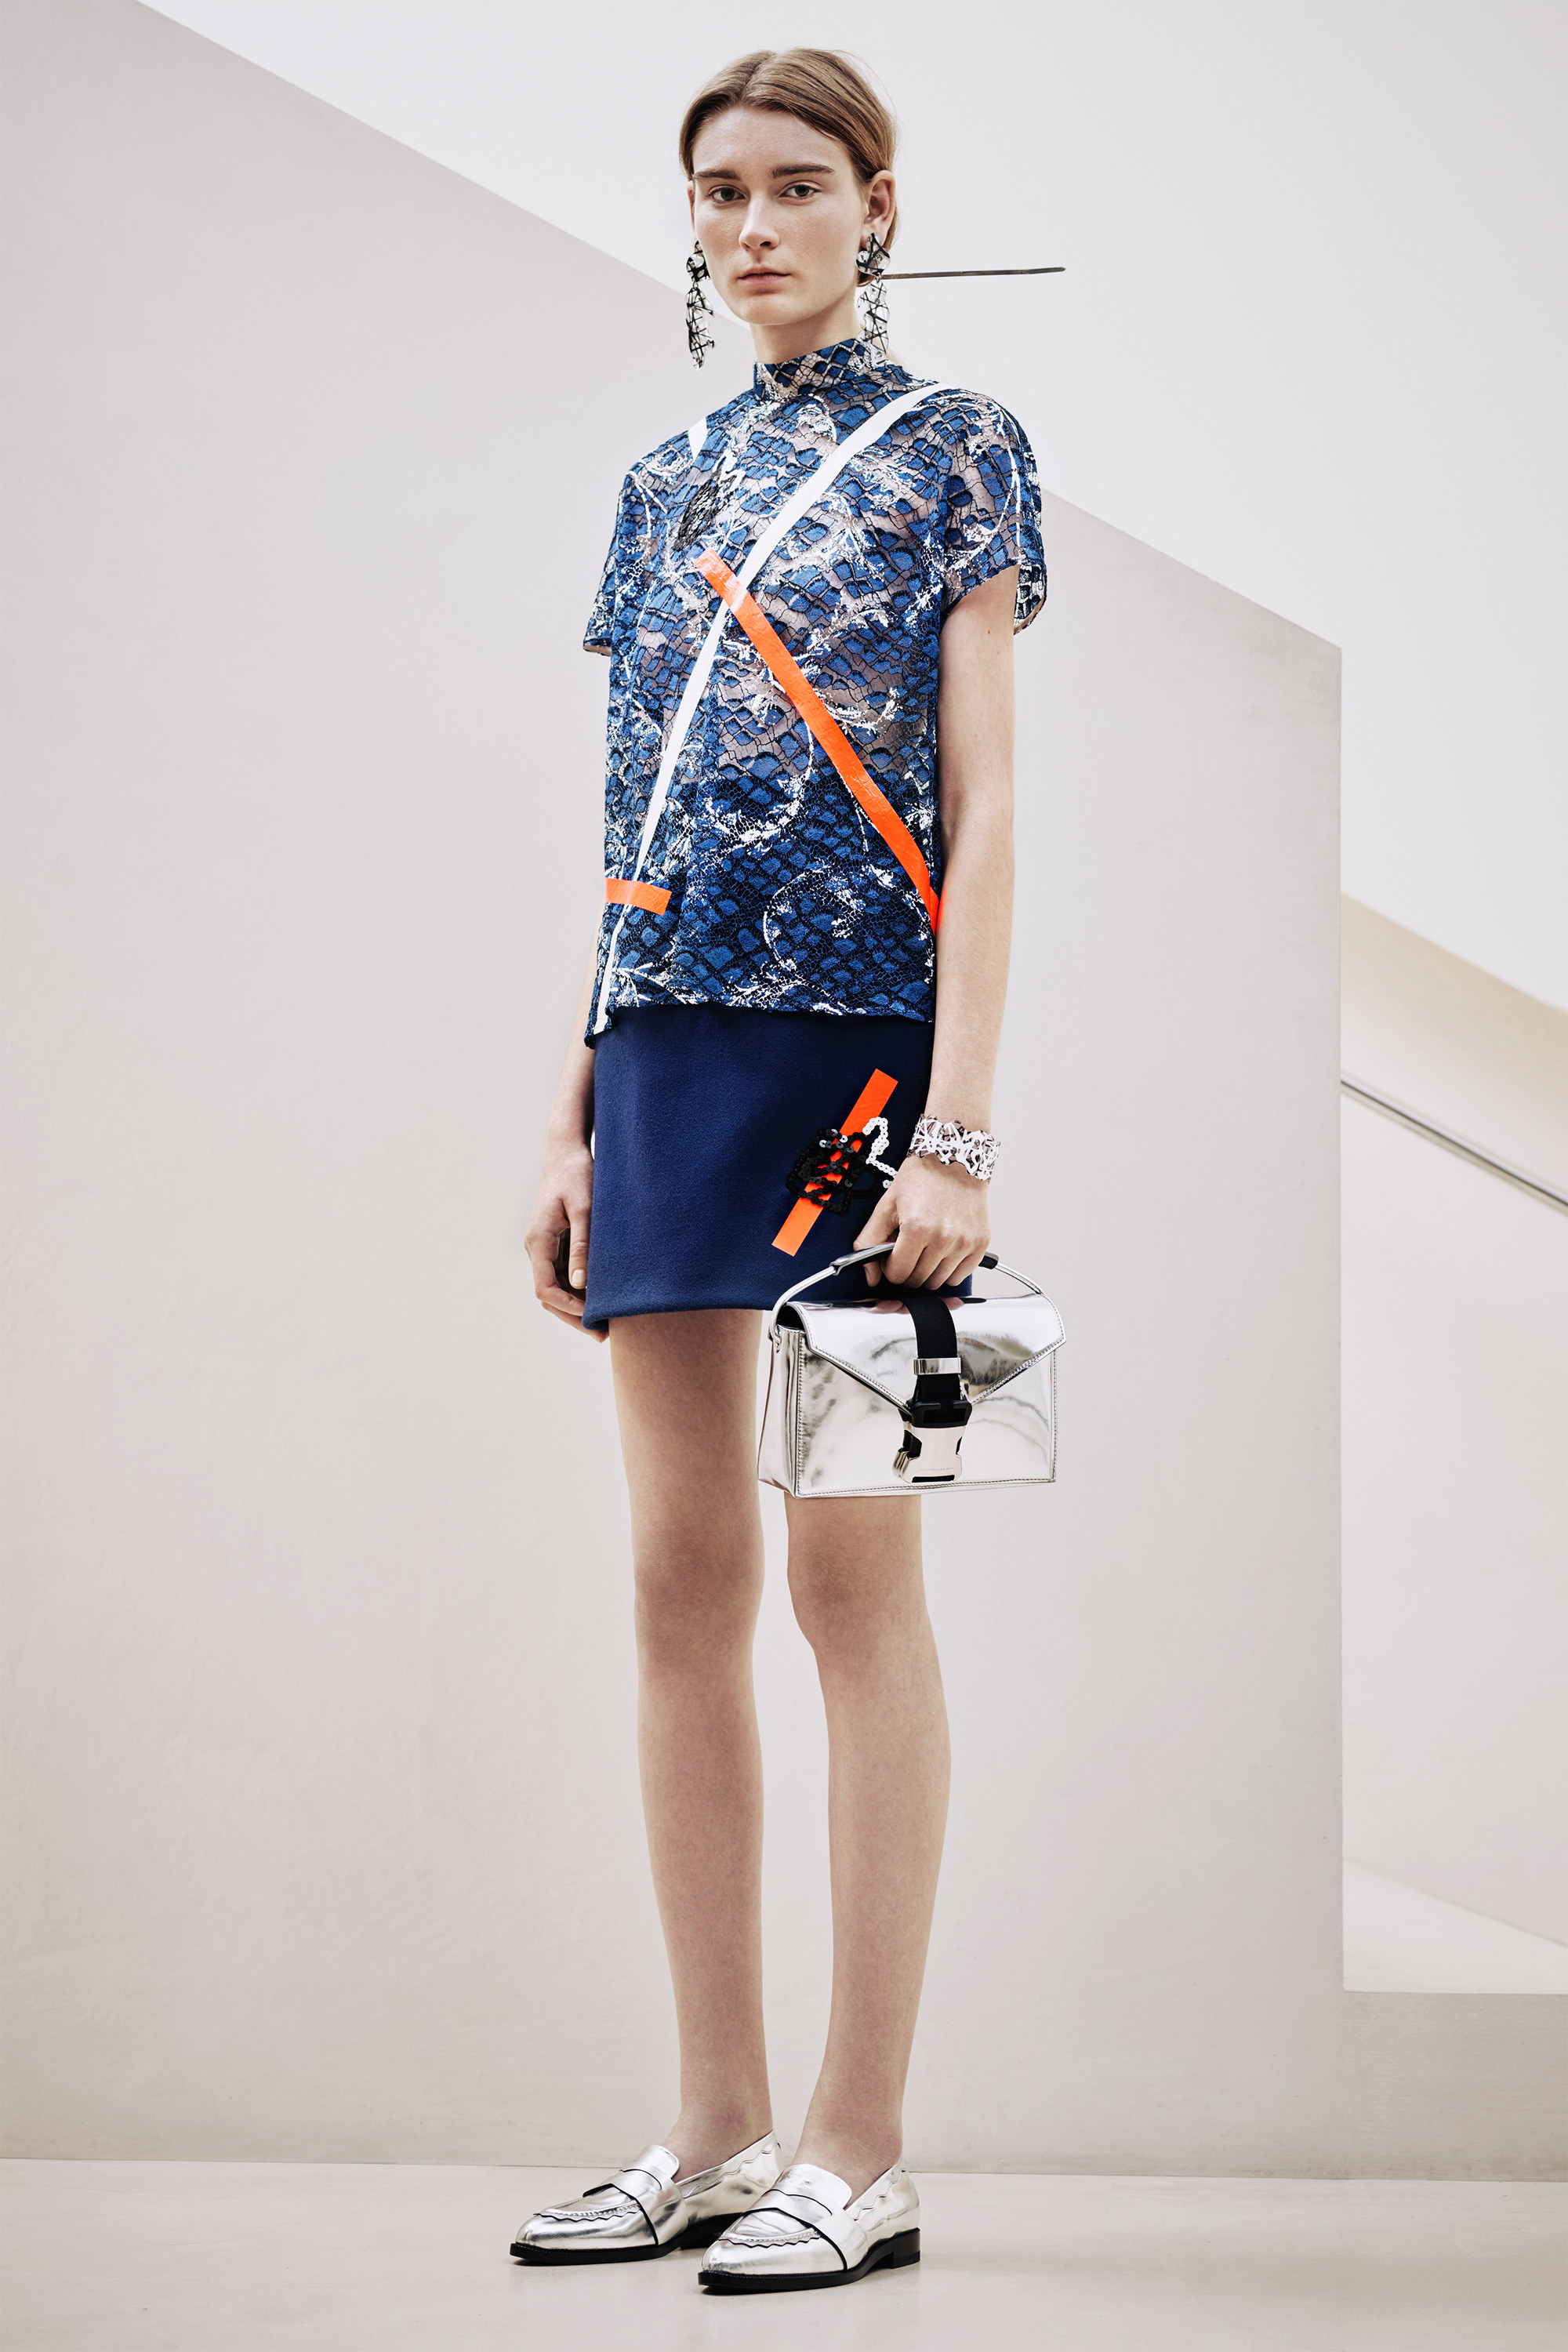 christopher-kane-pre-fall-2016-lookbook-07.jpg